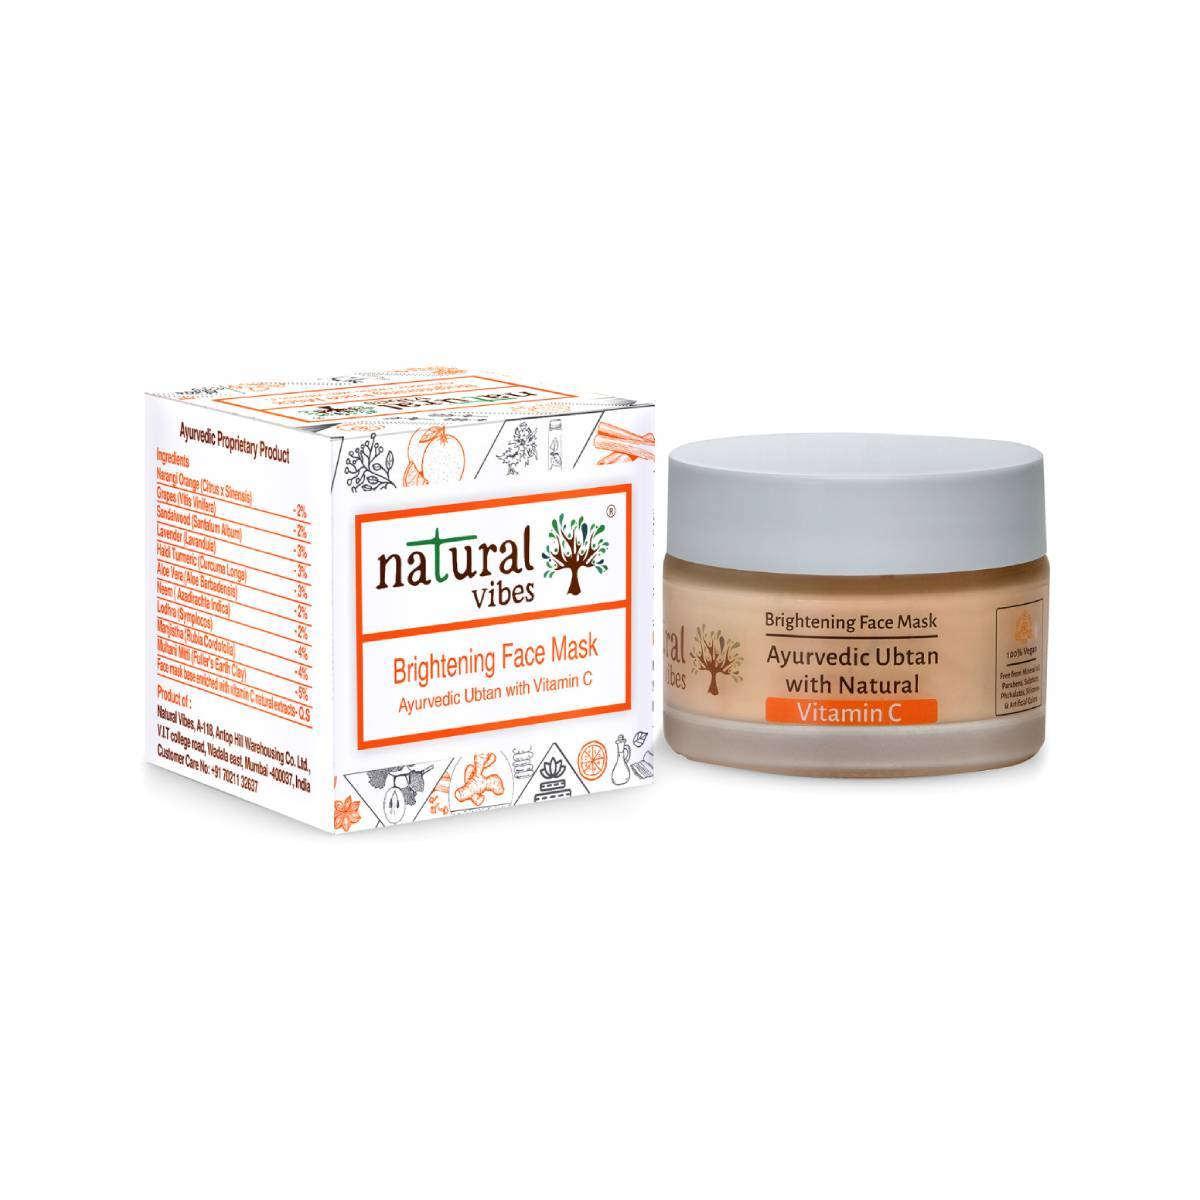 This image is of Natural Vibes Ayurvedic Vitamin C Brightening Face Mask